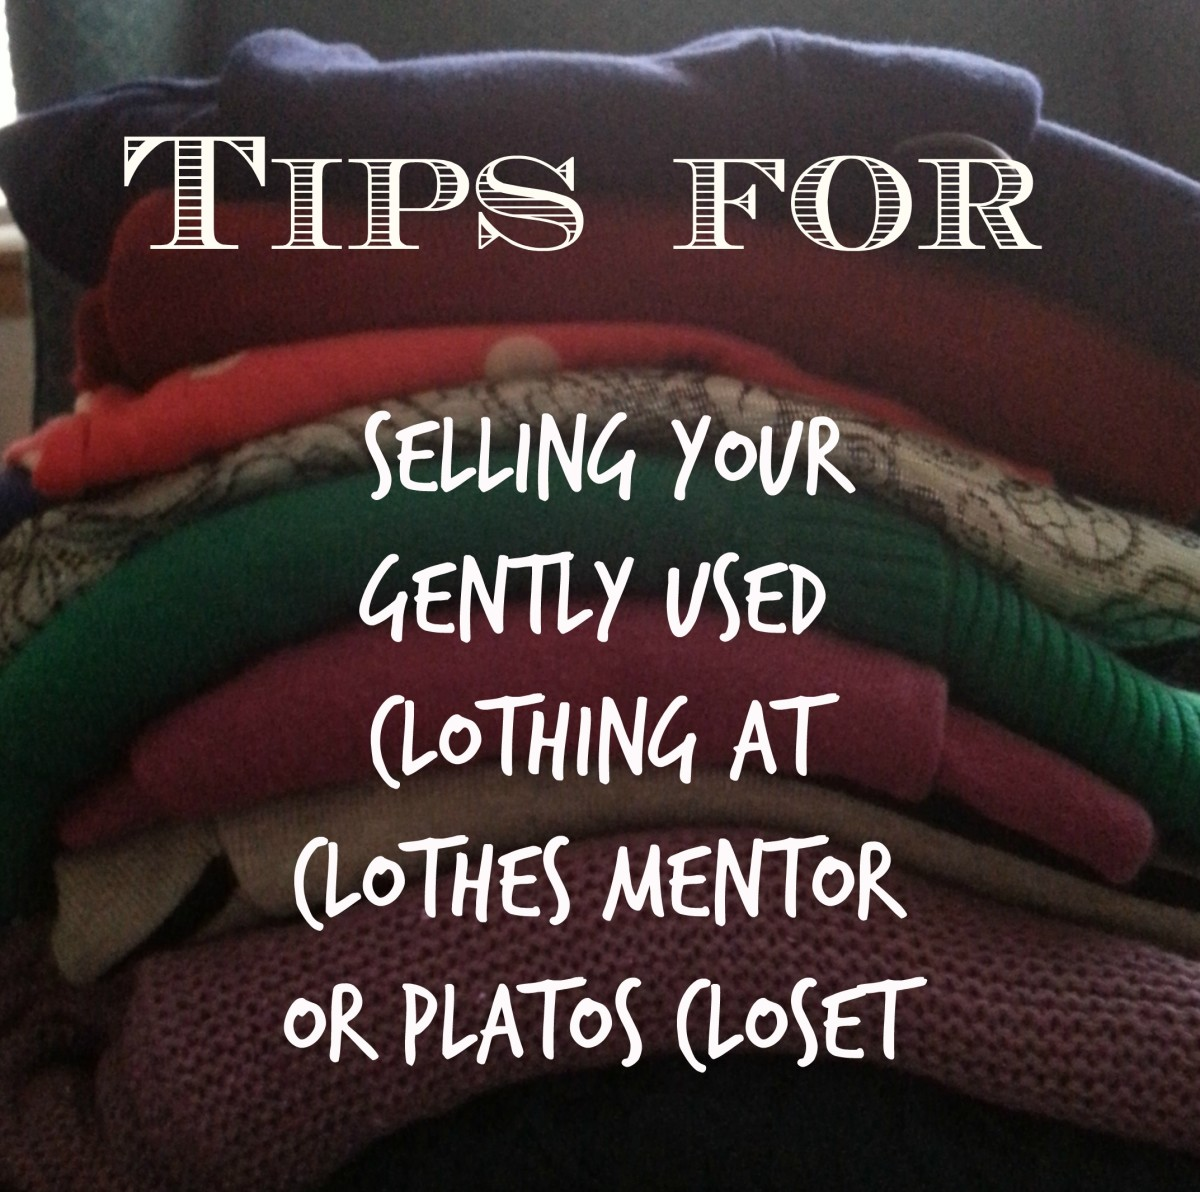 Tips for Selling Your Gently-Used Clothing at Clothes Mentor or Plato's Closet